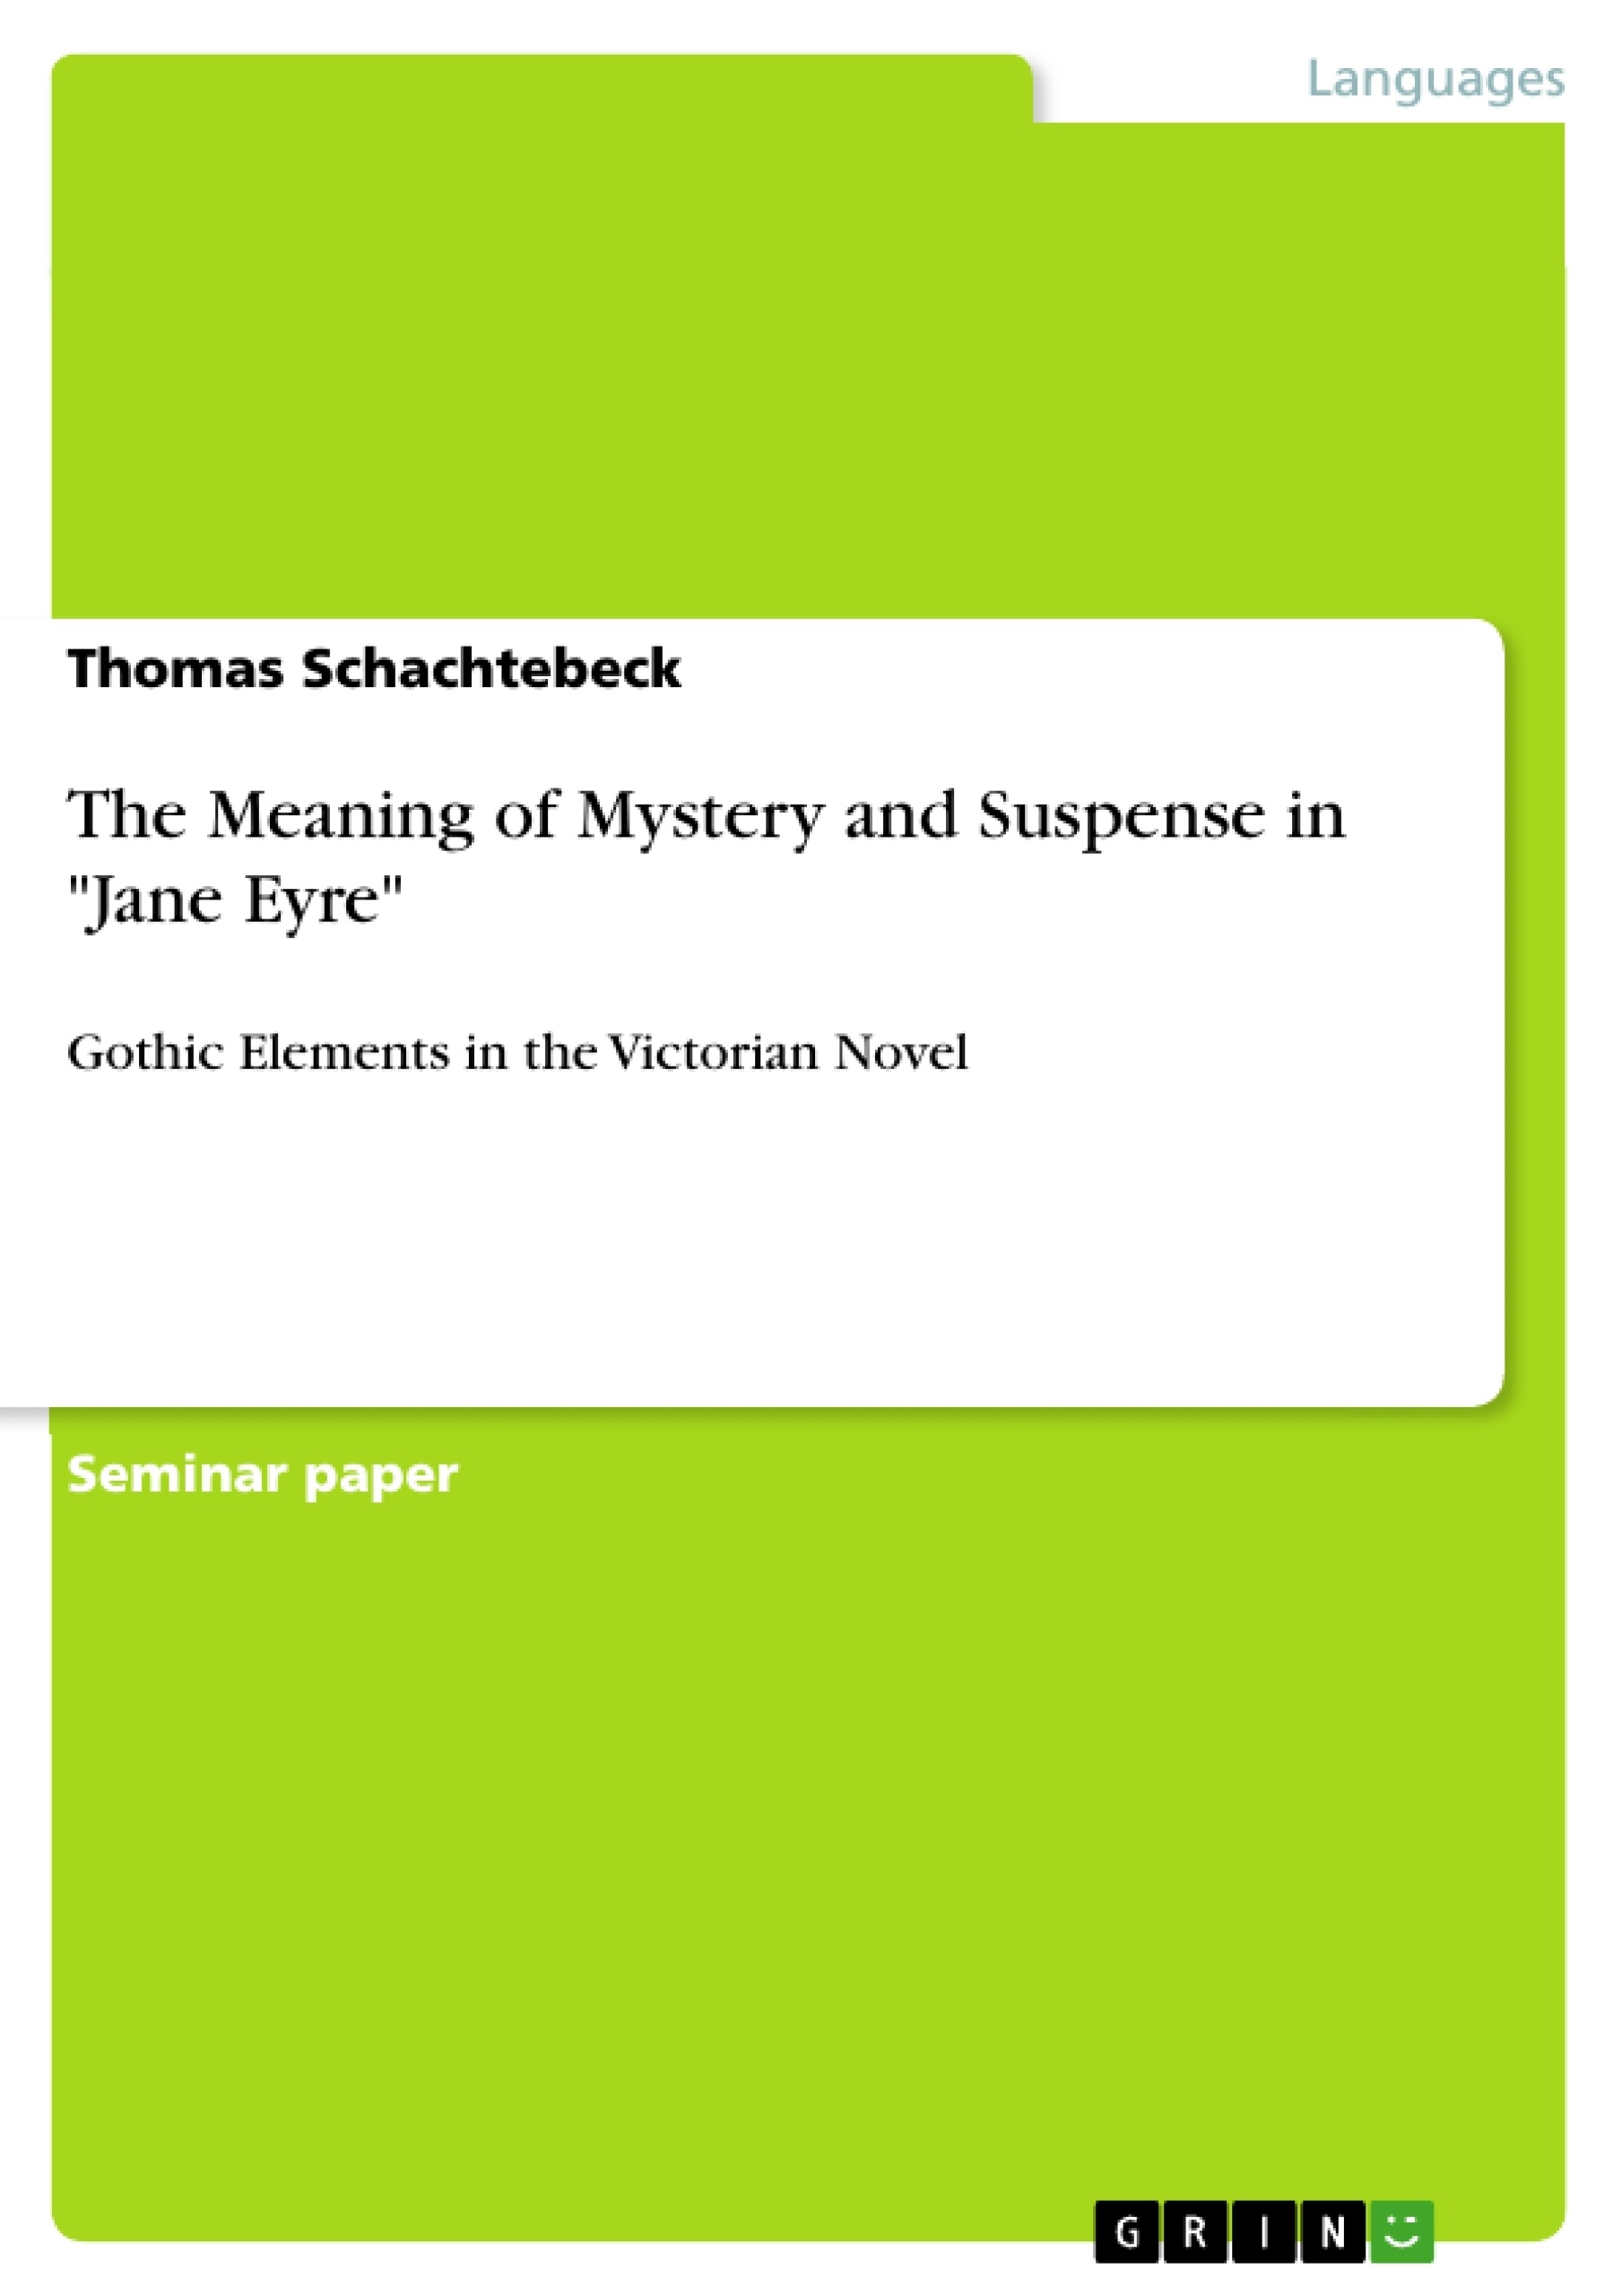 jane eyre response paper Helen burns in jane eyre  in the story as it has a great impact on jane helen burns is a character  her response to suffering can be.